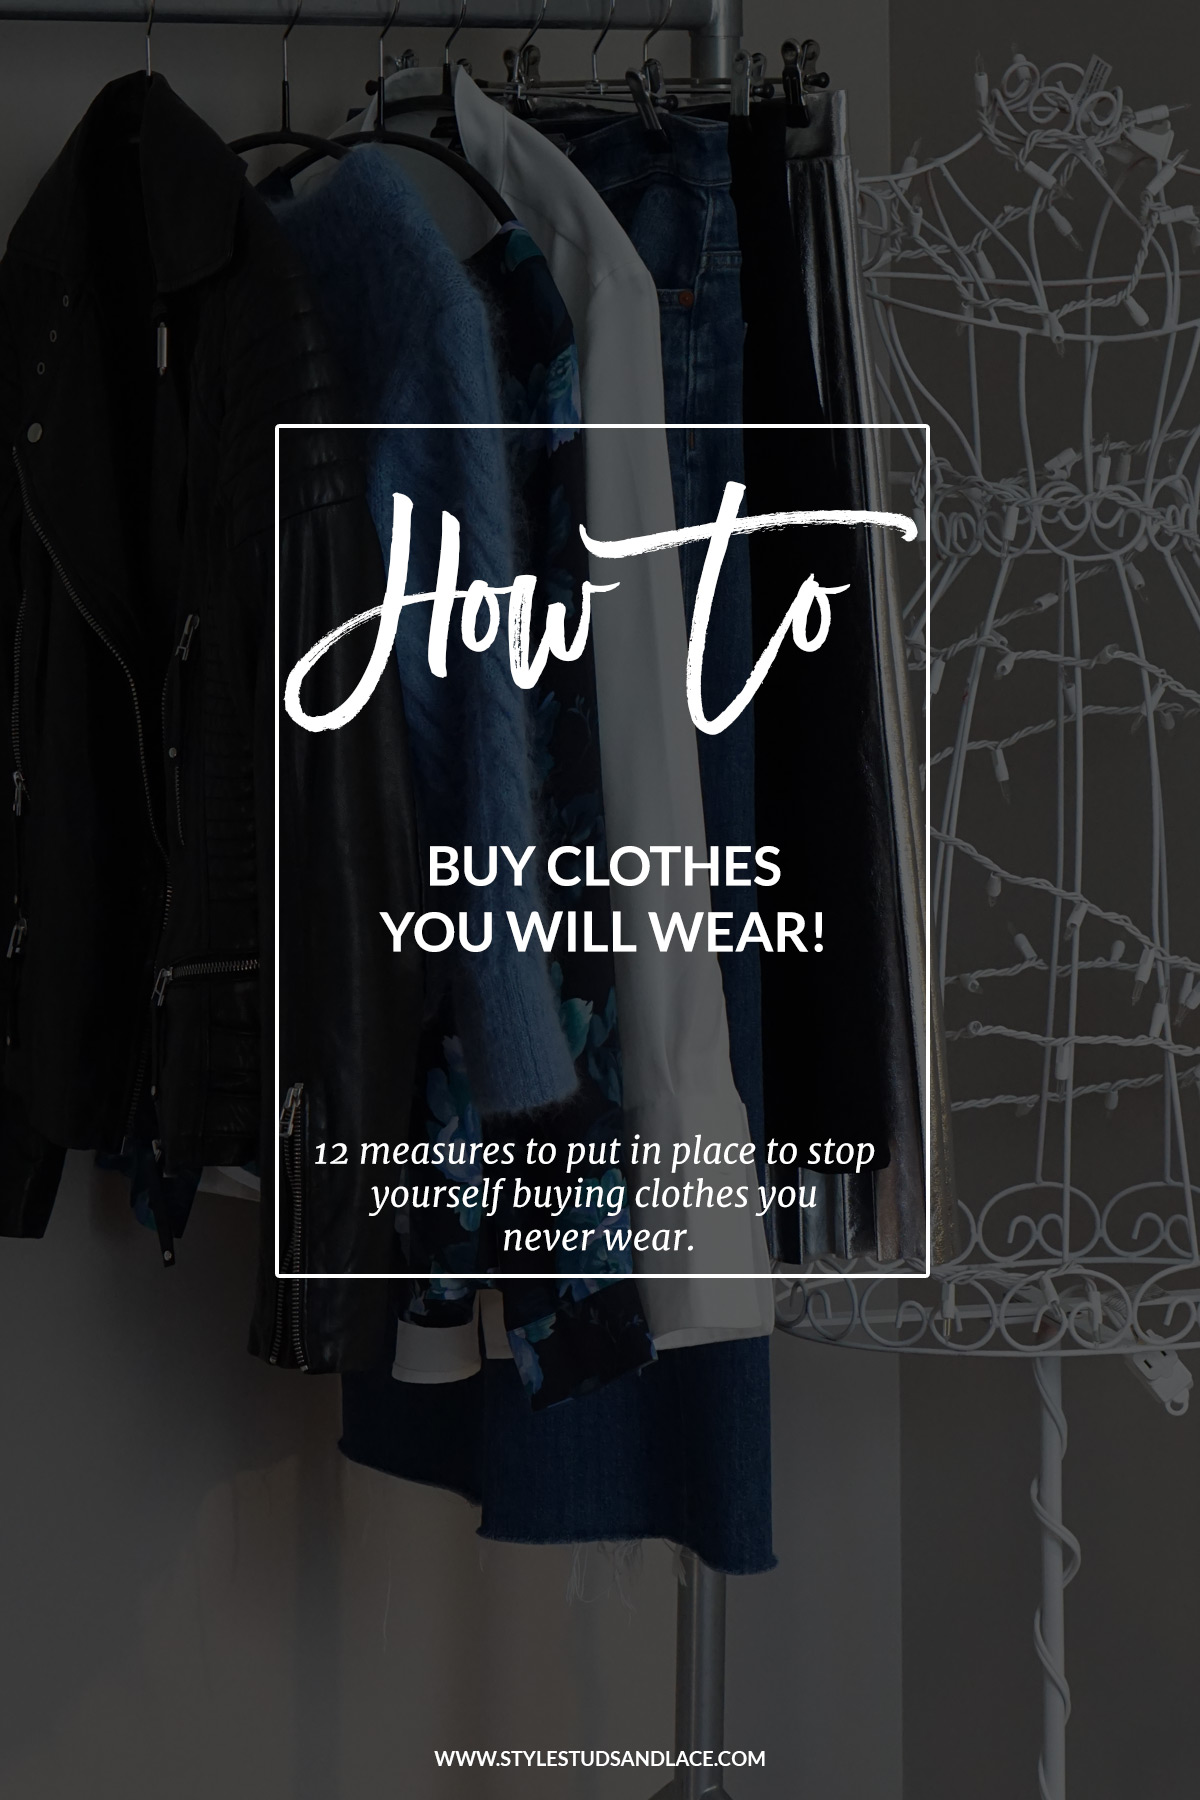 12 ways to stop yourself buying clothes you never wear | 12 simple, effective things you can do to buy clothes you will wear. Save time, save money, shop consciously, shopping tips, style advice, style hack, top tips, solutions